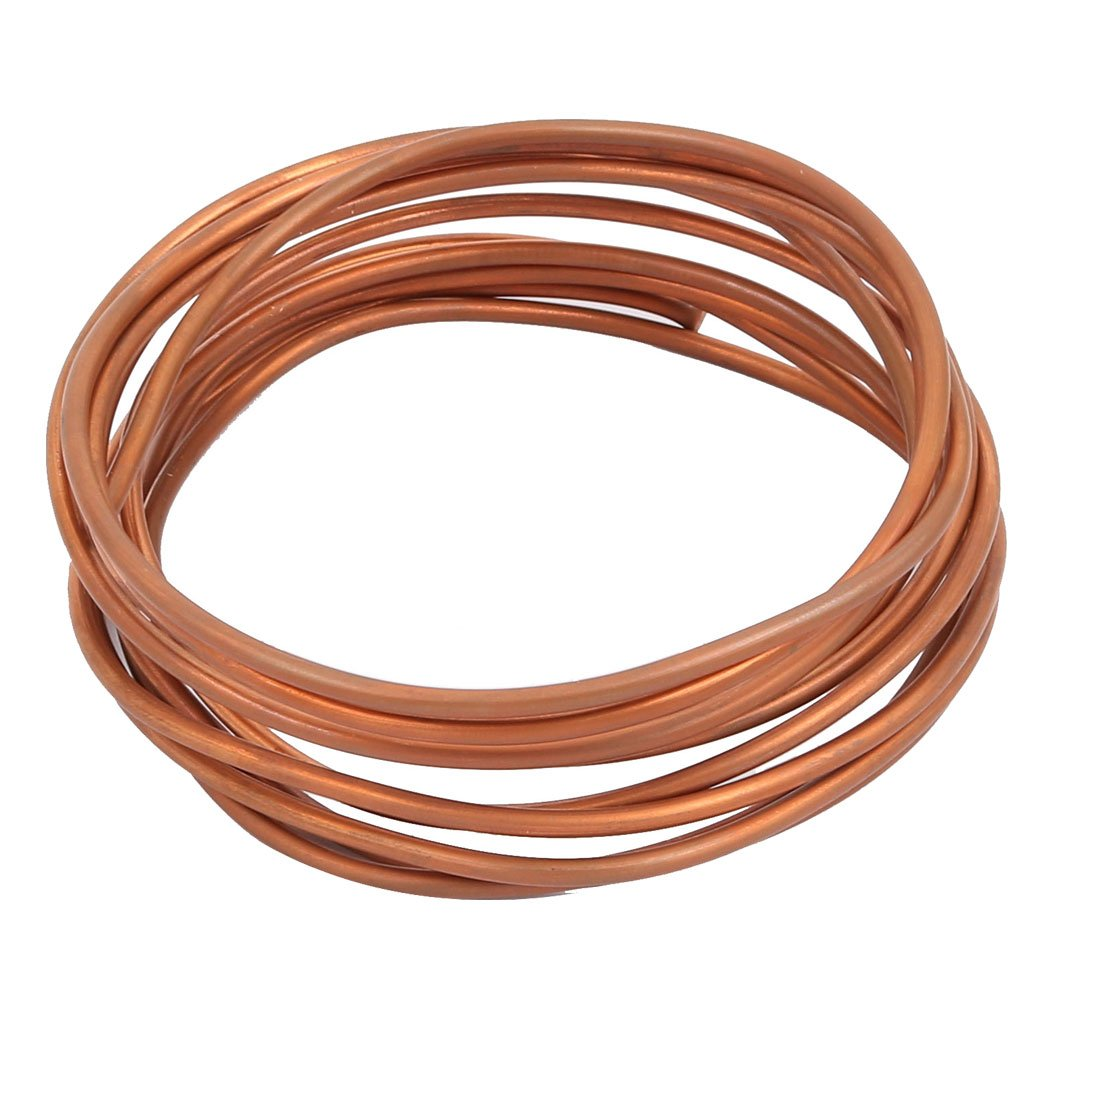 sourcingmap 2.9 Meters Long 3mm Dia Copper Tone Refrigeration Slender Pipe Tubing Coil